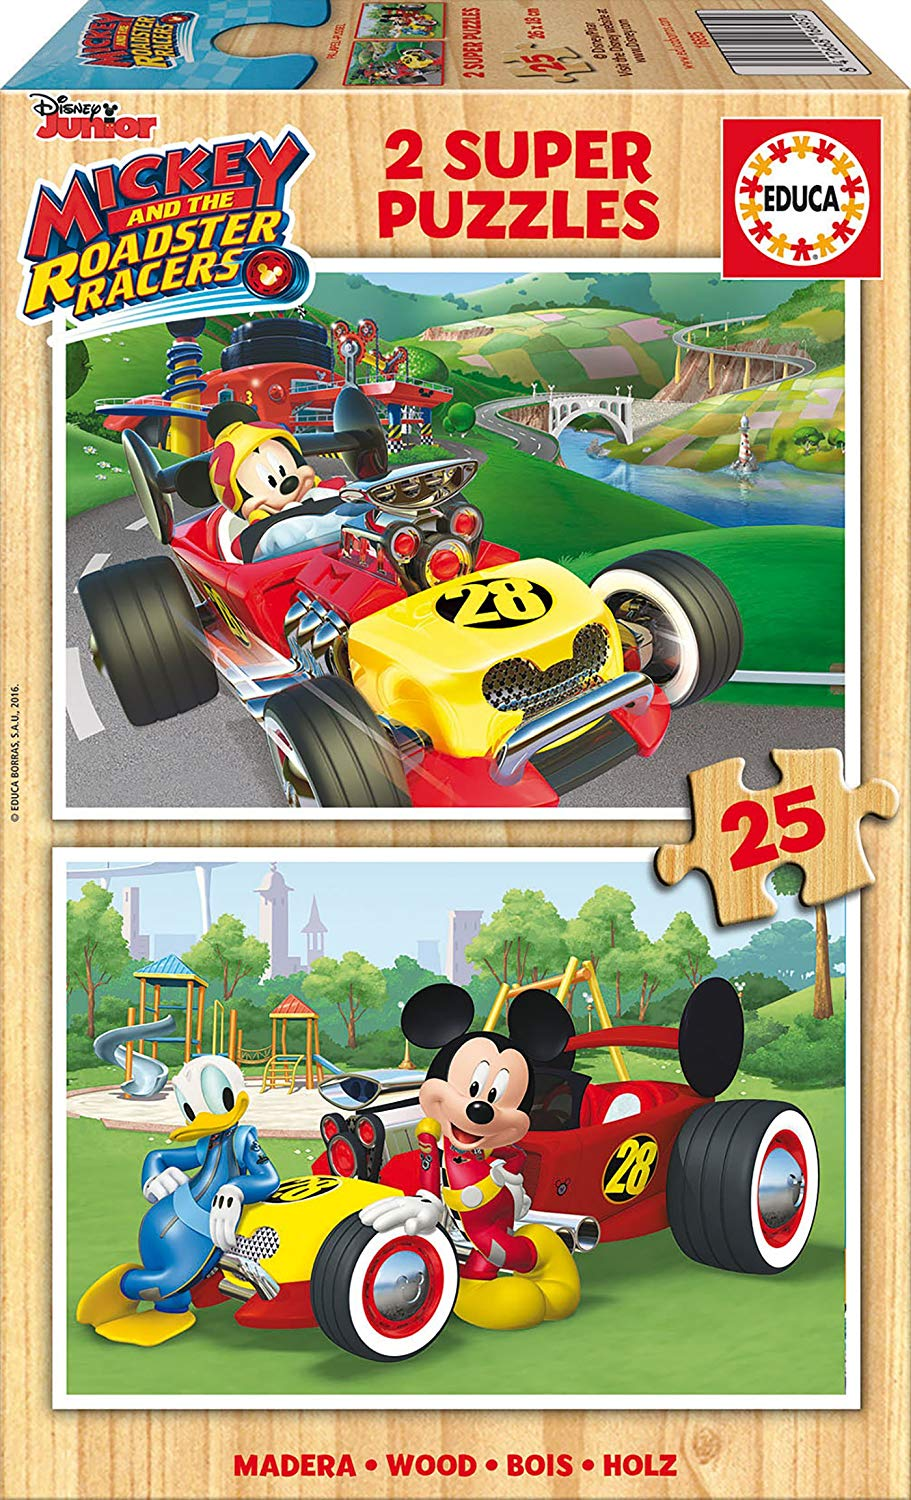 educa-2-holzpuzzles-mickey-and-the-roadster-racers-25-teile-puzzle-educa-17234